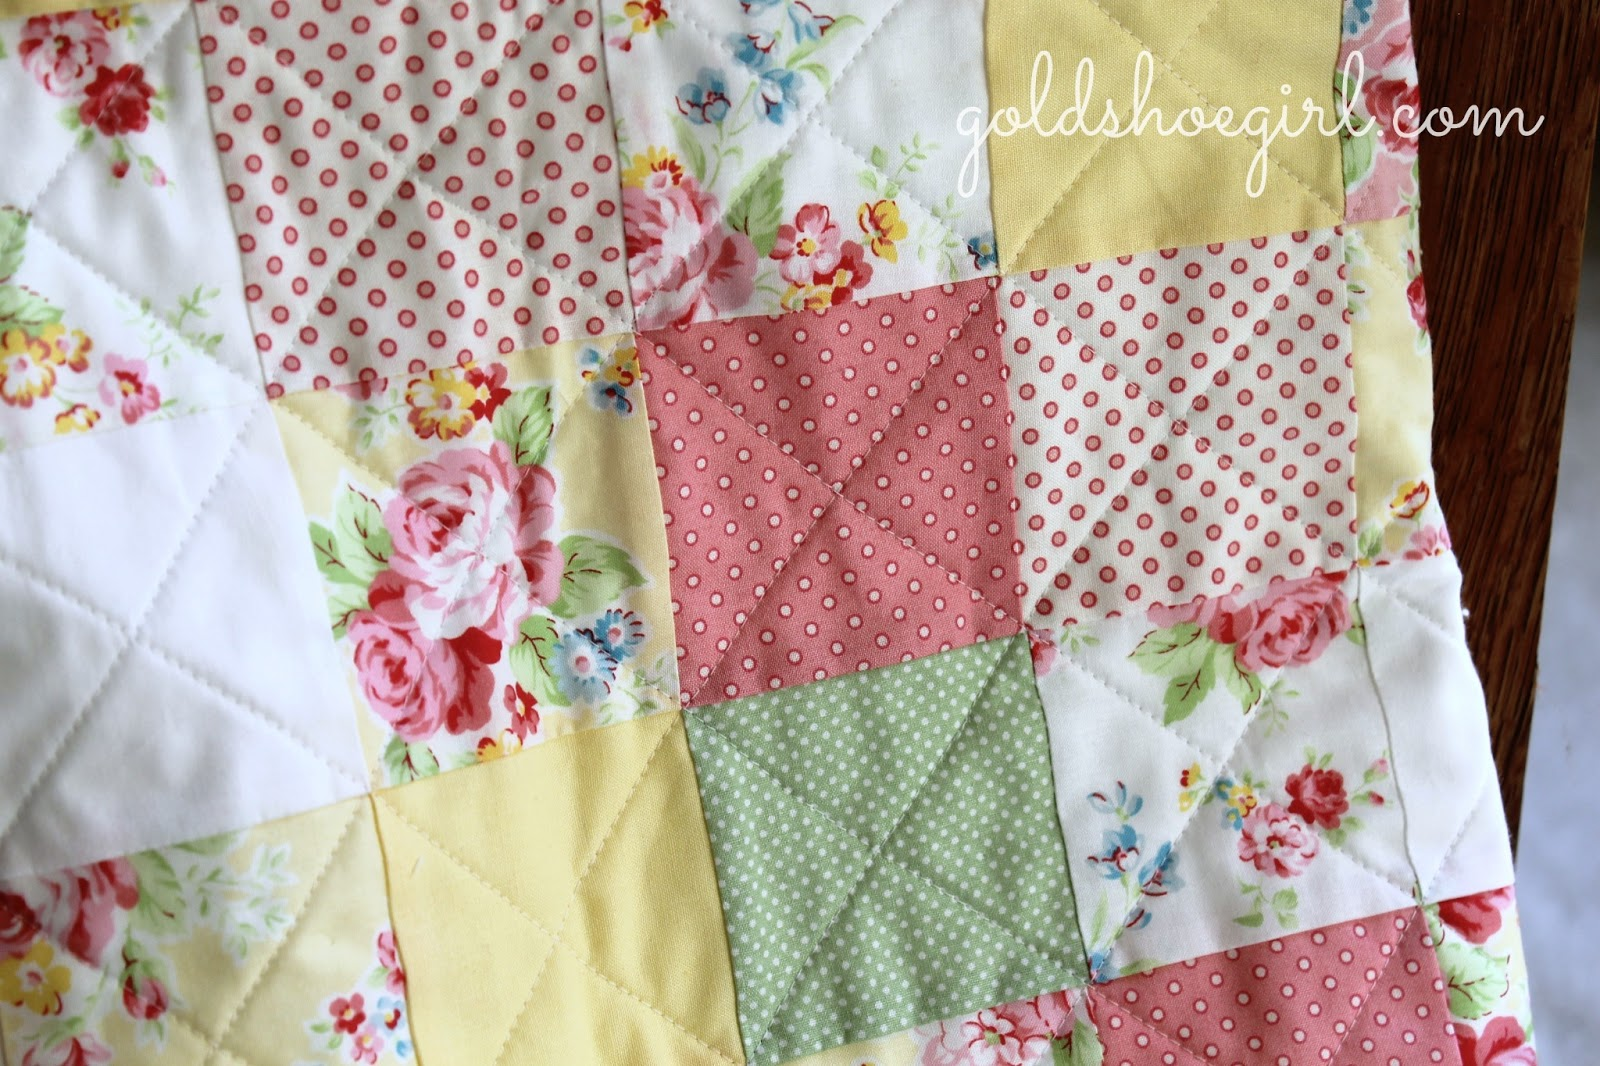 Also finished another baby quilt with the same set of fabrics but